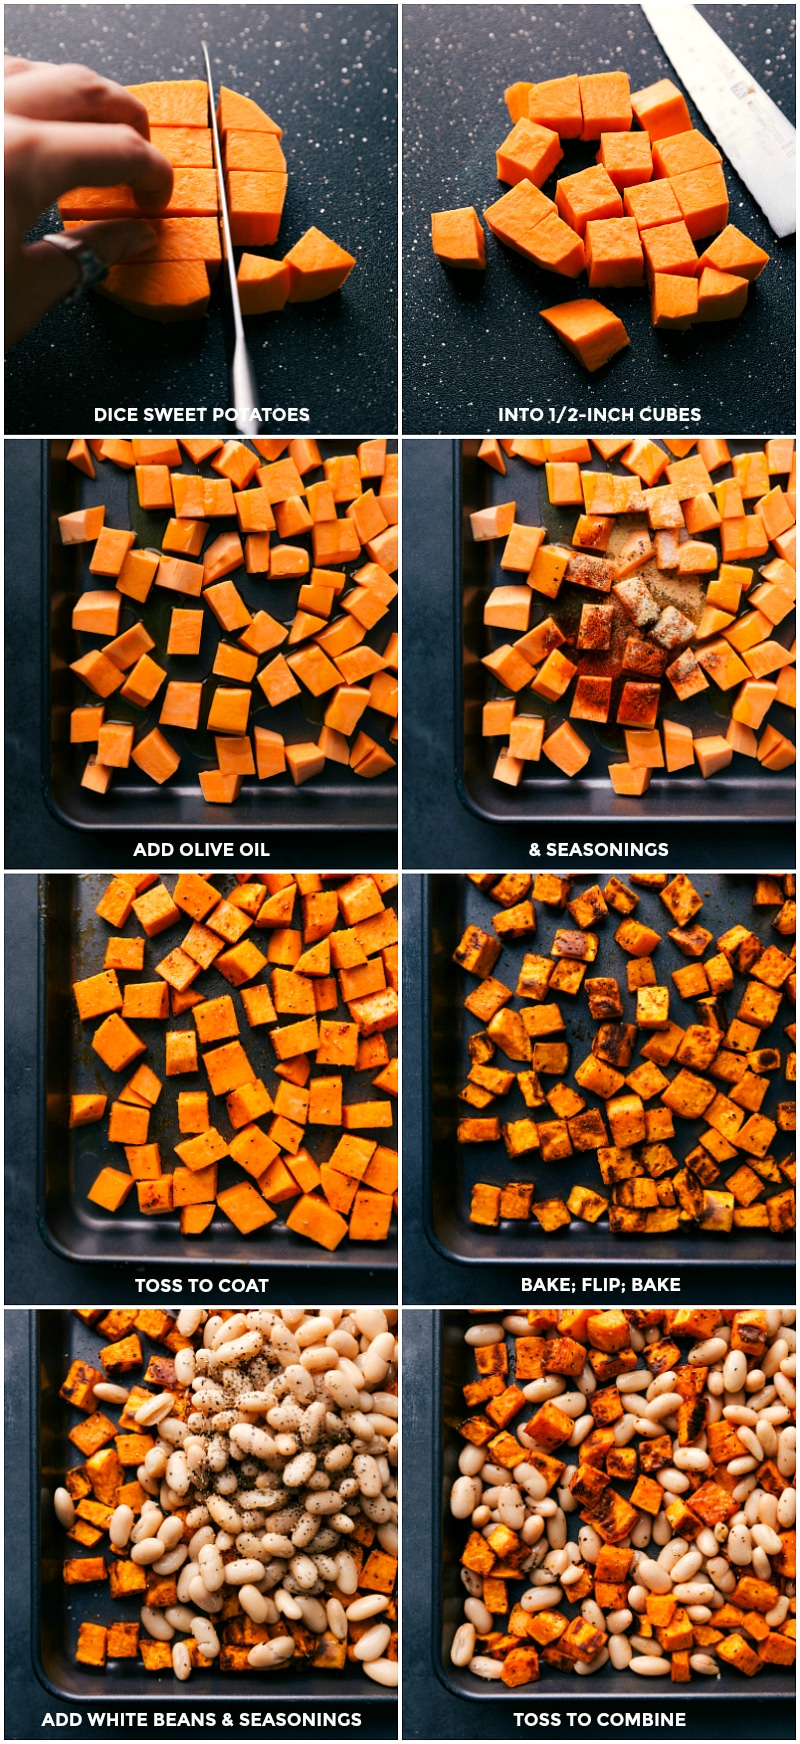 Process shots-- images of the sweet potatoes being cut and put on a tray to be roasted with seasonings, then the white beans being added on the freshly roasted sweet potatoes to warm through